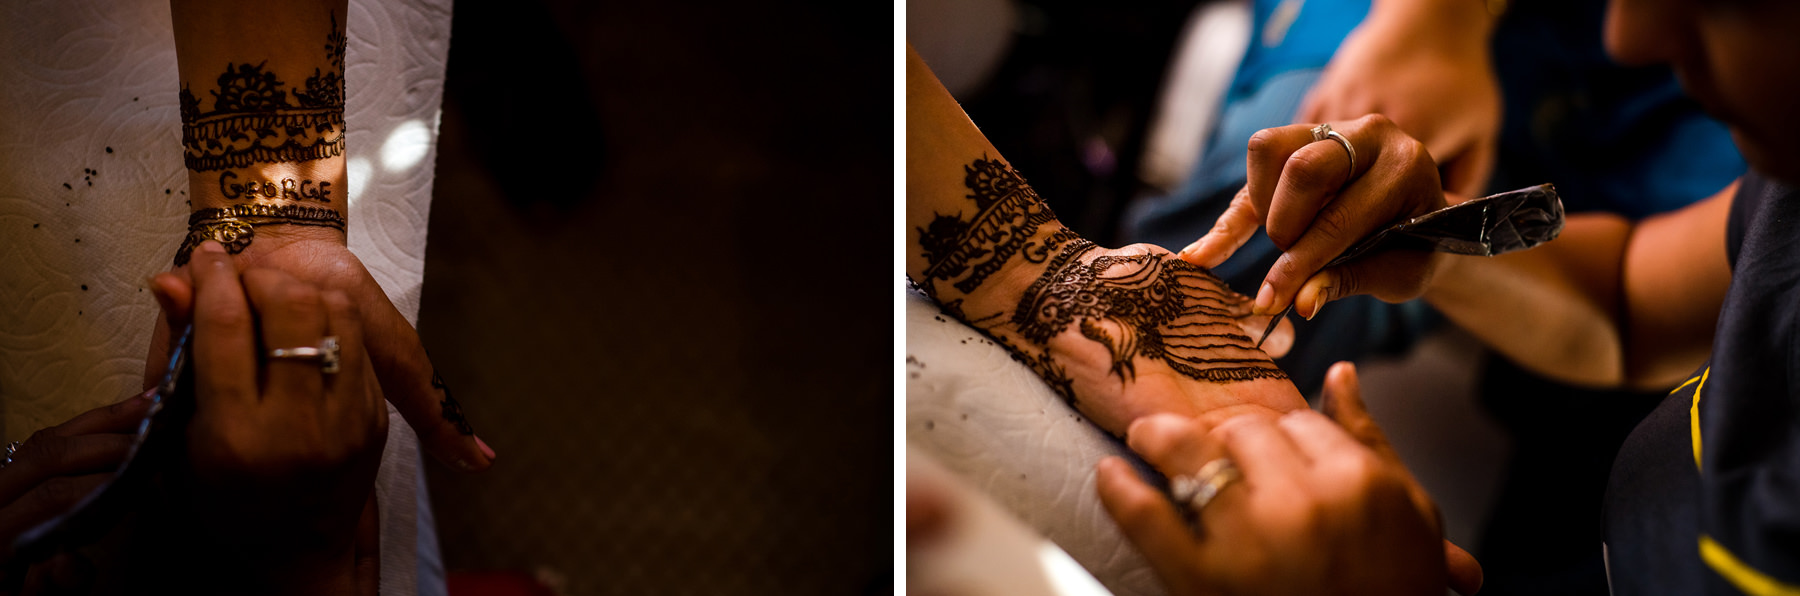 bride getting henna drawn on her hands